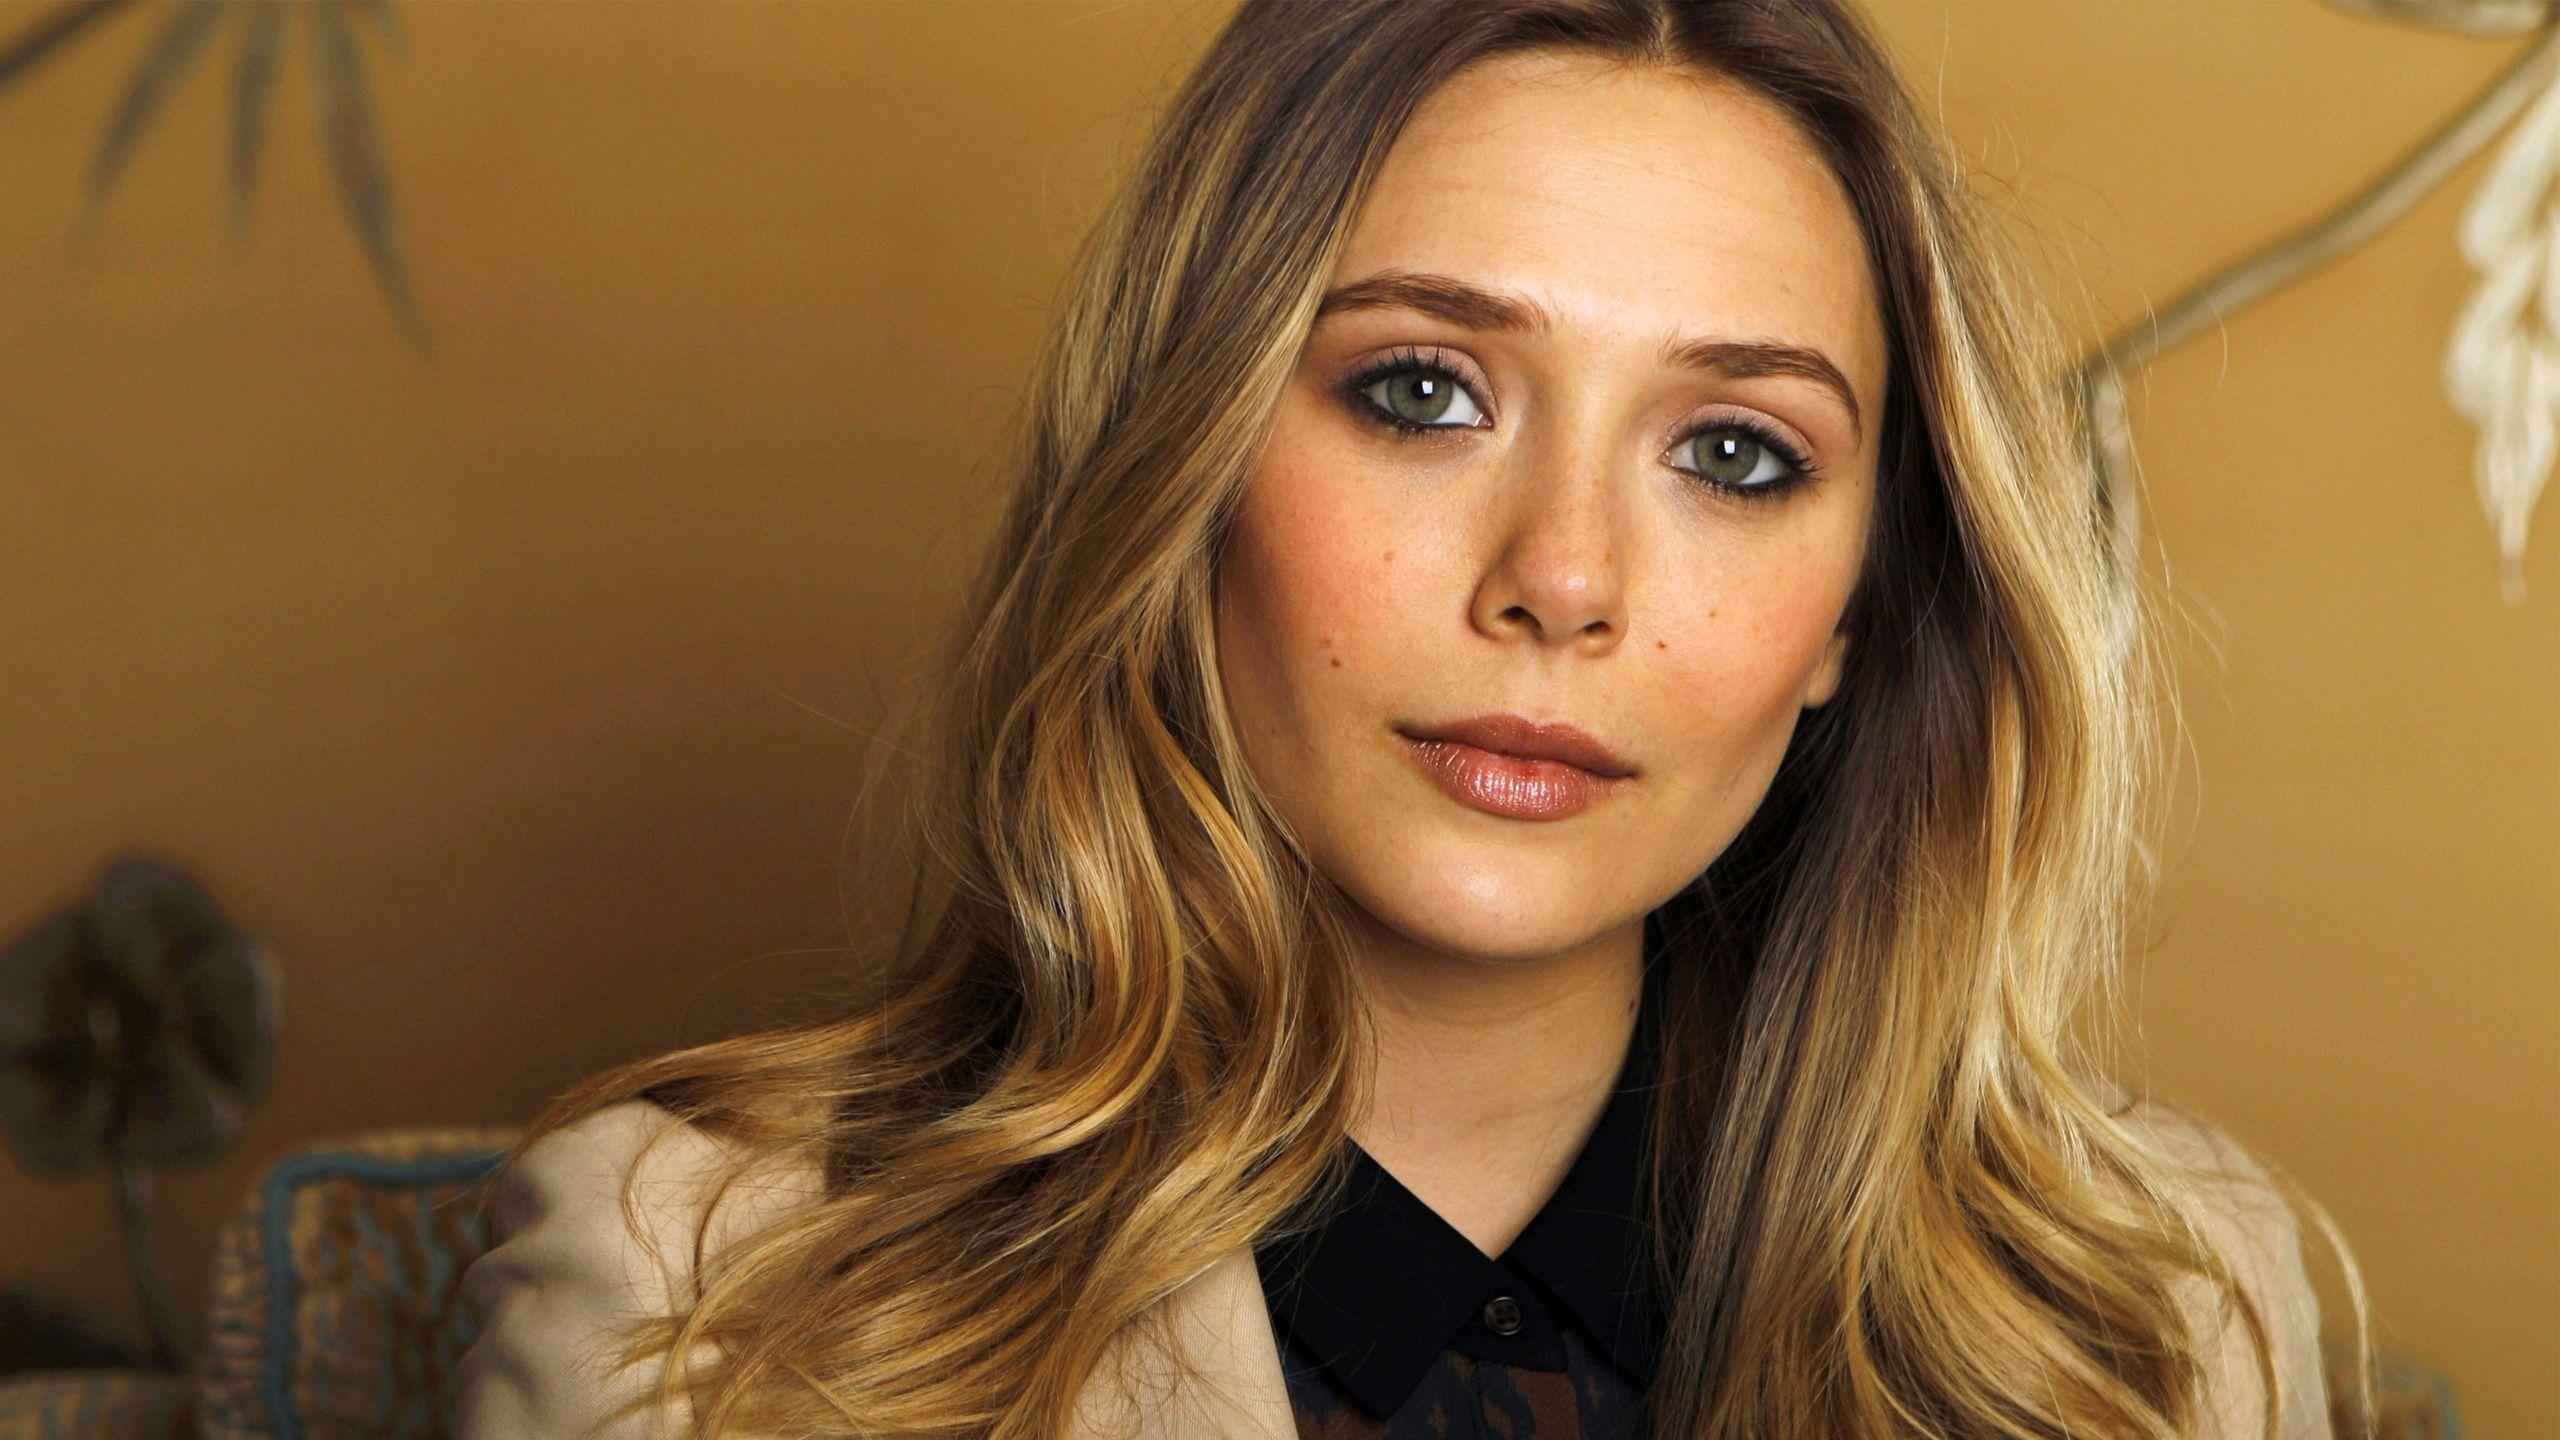 Actress Elizabeth Olsen Wallpapers | HD Wallpapers